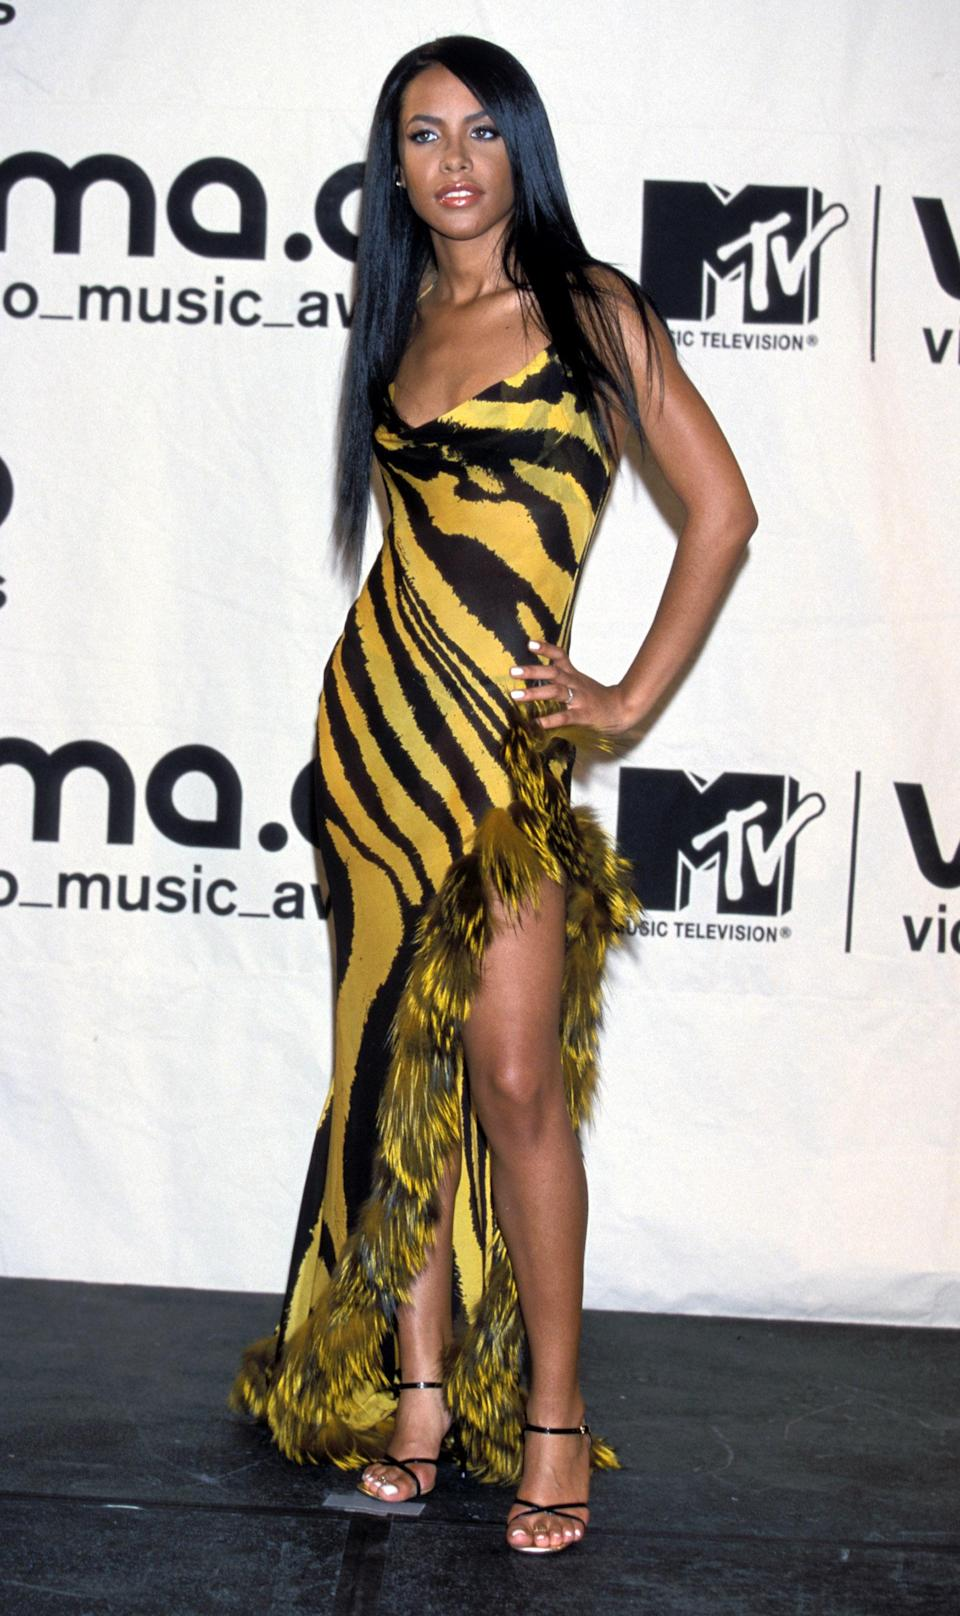 Aaliyah had the kind of effortless swag and beauty that artists are still trying to capture today. Her black and yellow Roberto Cavalli gown was so fashion-forward, that it literally looks like a design we'd see on the red carpet this season.